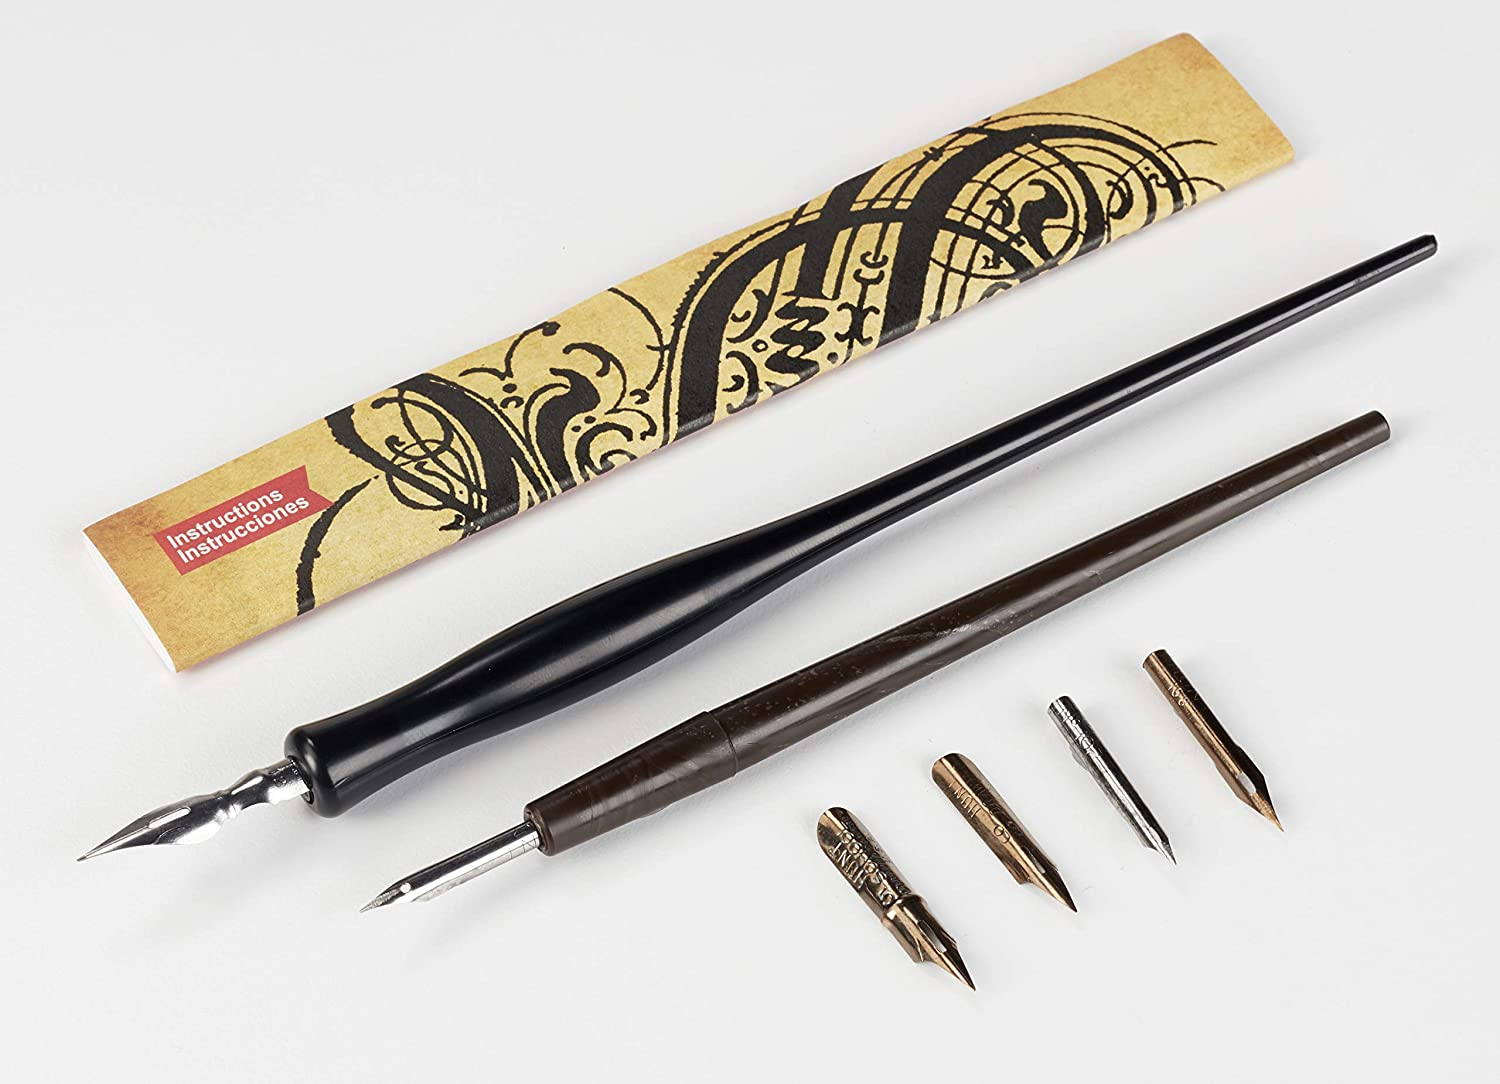 Two Speedball Pen and Ink Crow Quill Sets for Drawing Sketching and Calligraphy Cross Hatching Stippling Cartooning